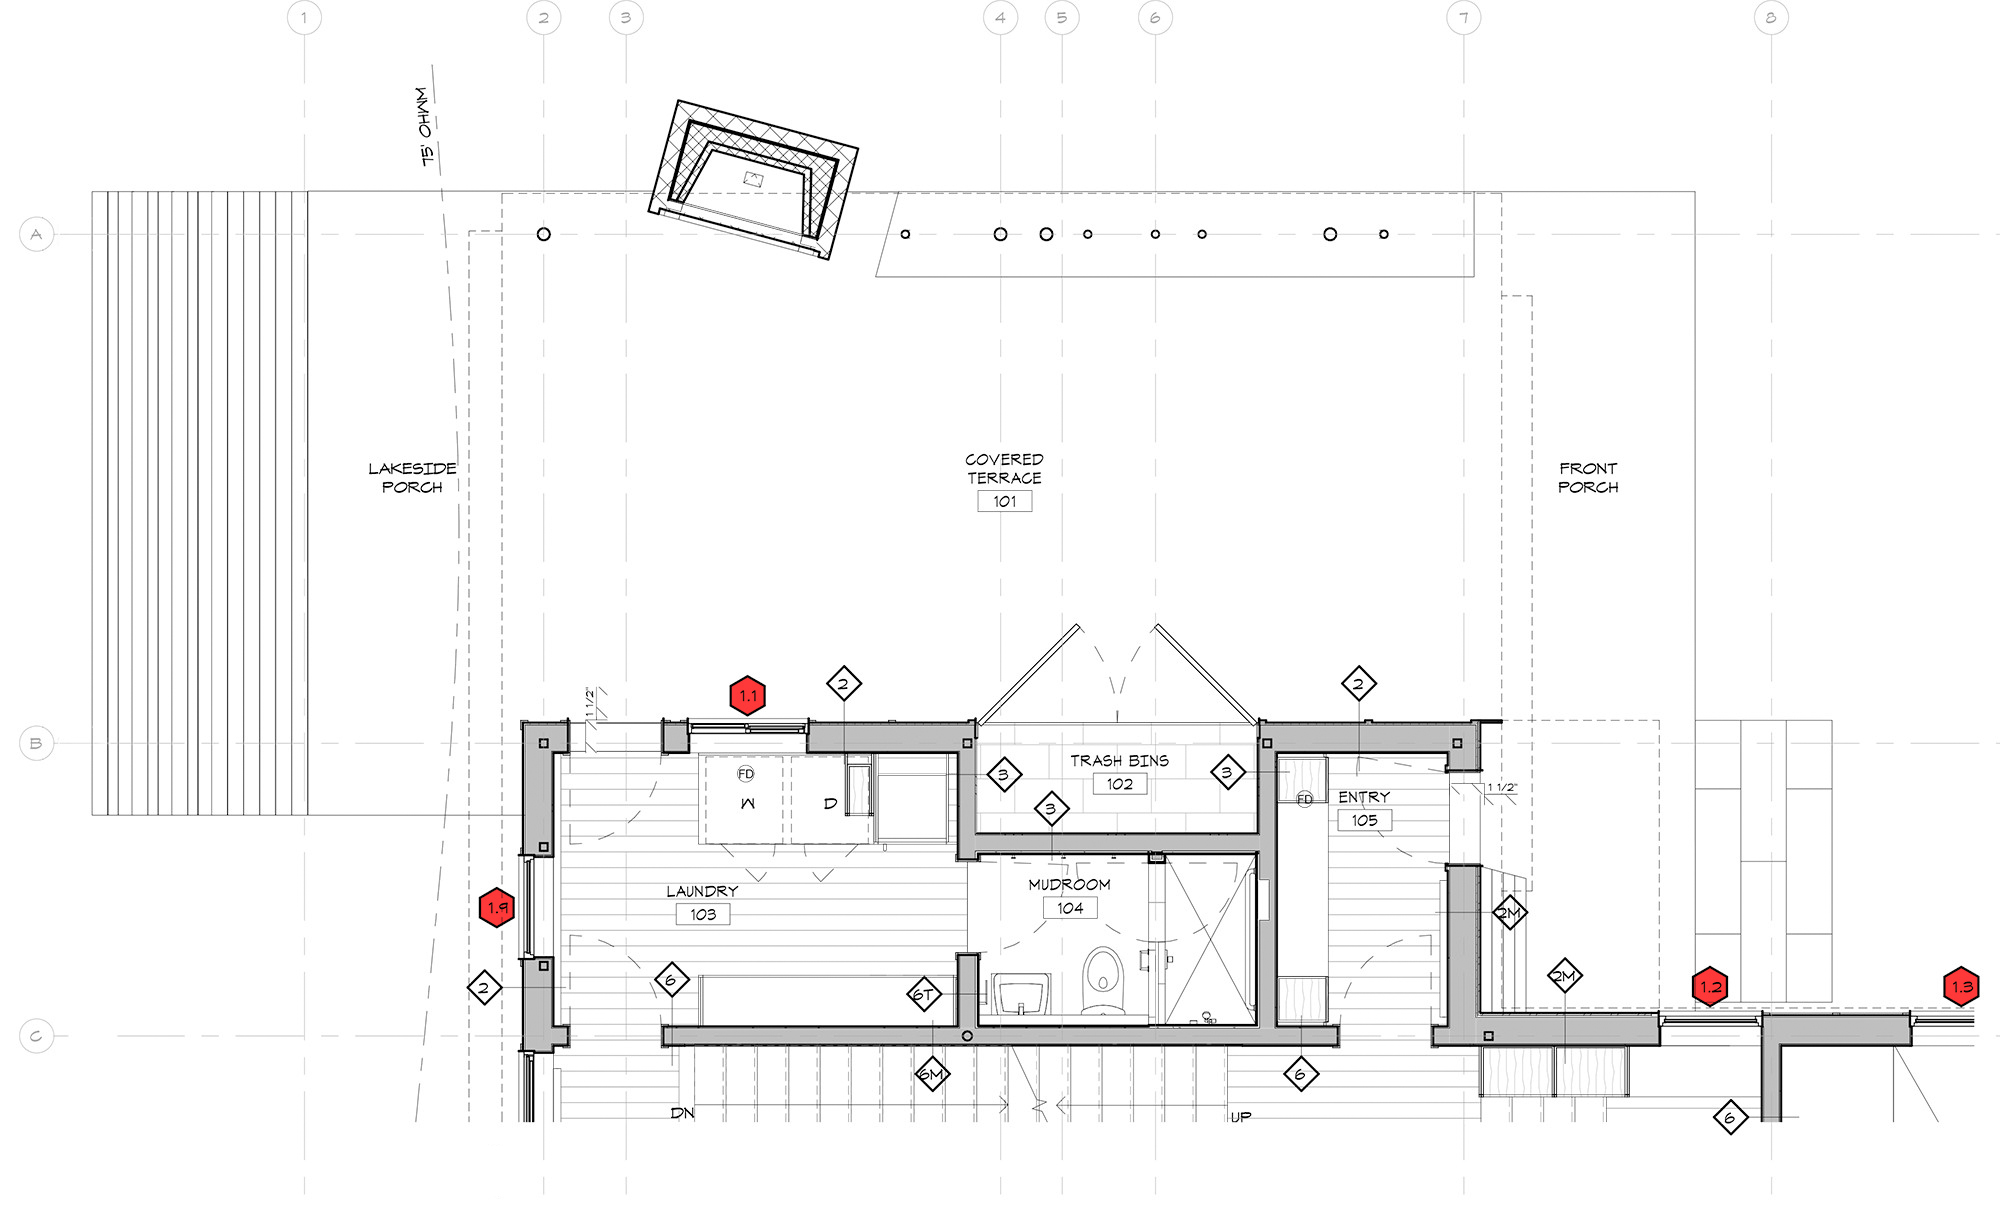 data floor plans floor plans floor plan graphic pricing plans design Architectural Graphics 101 Window Tags in Plan